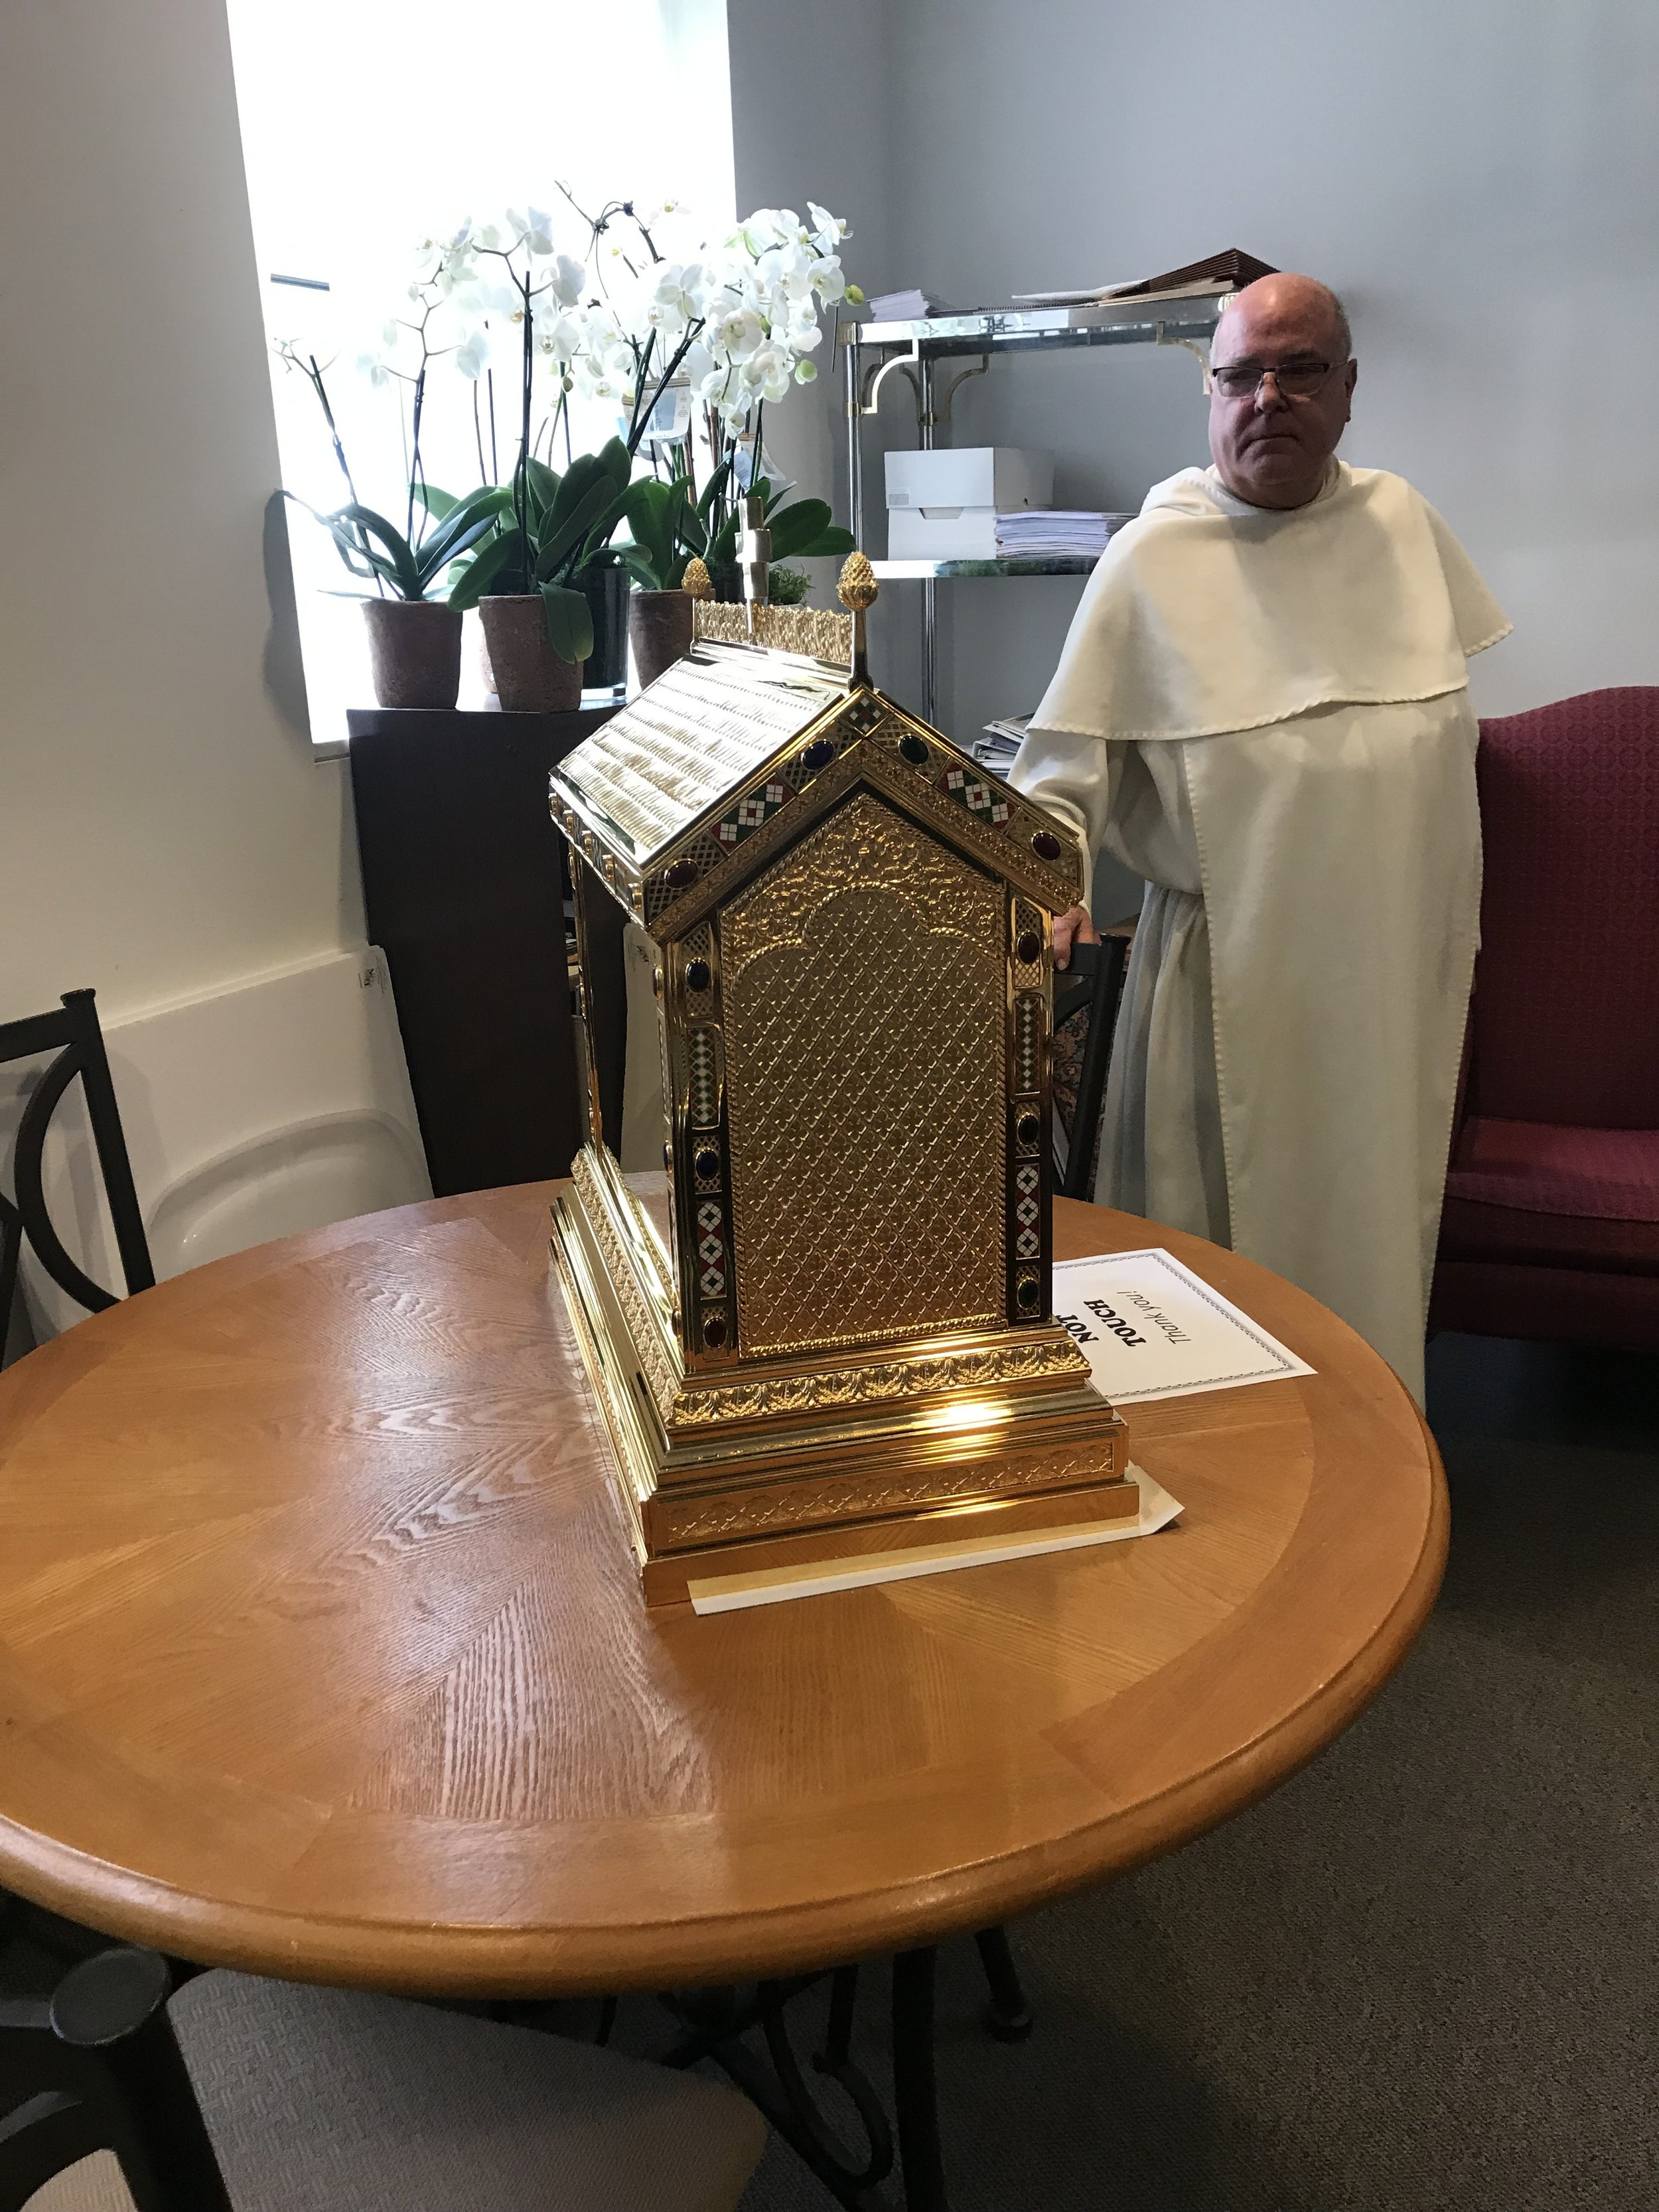 Father Barranger with the new Tabernacle for the church, handmade in Spain.